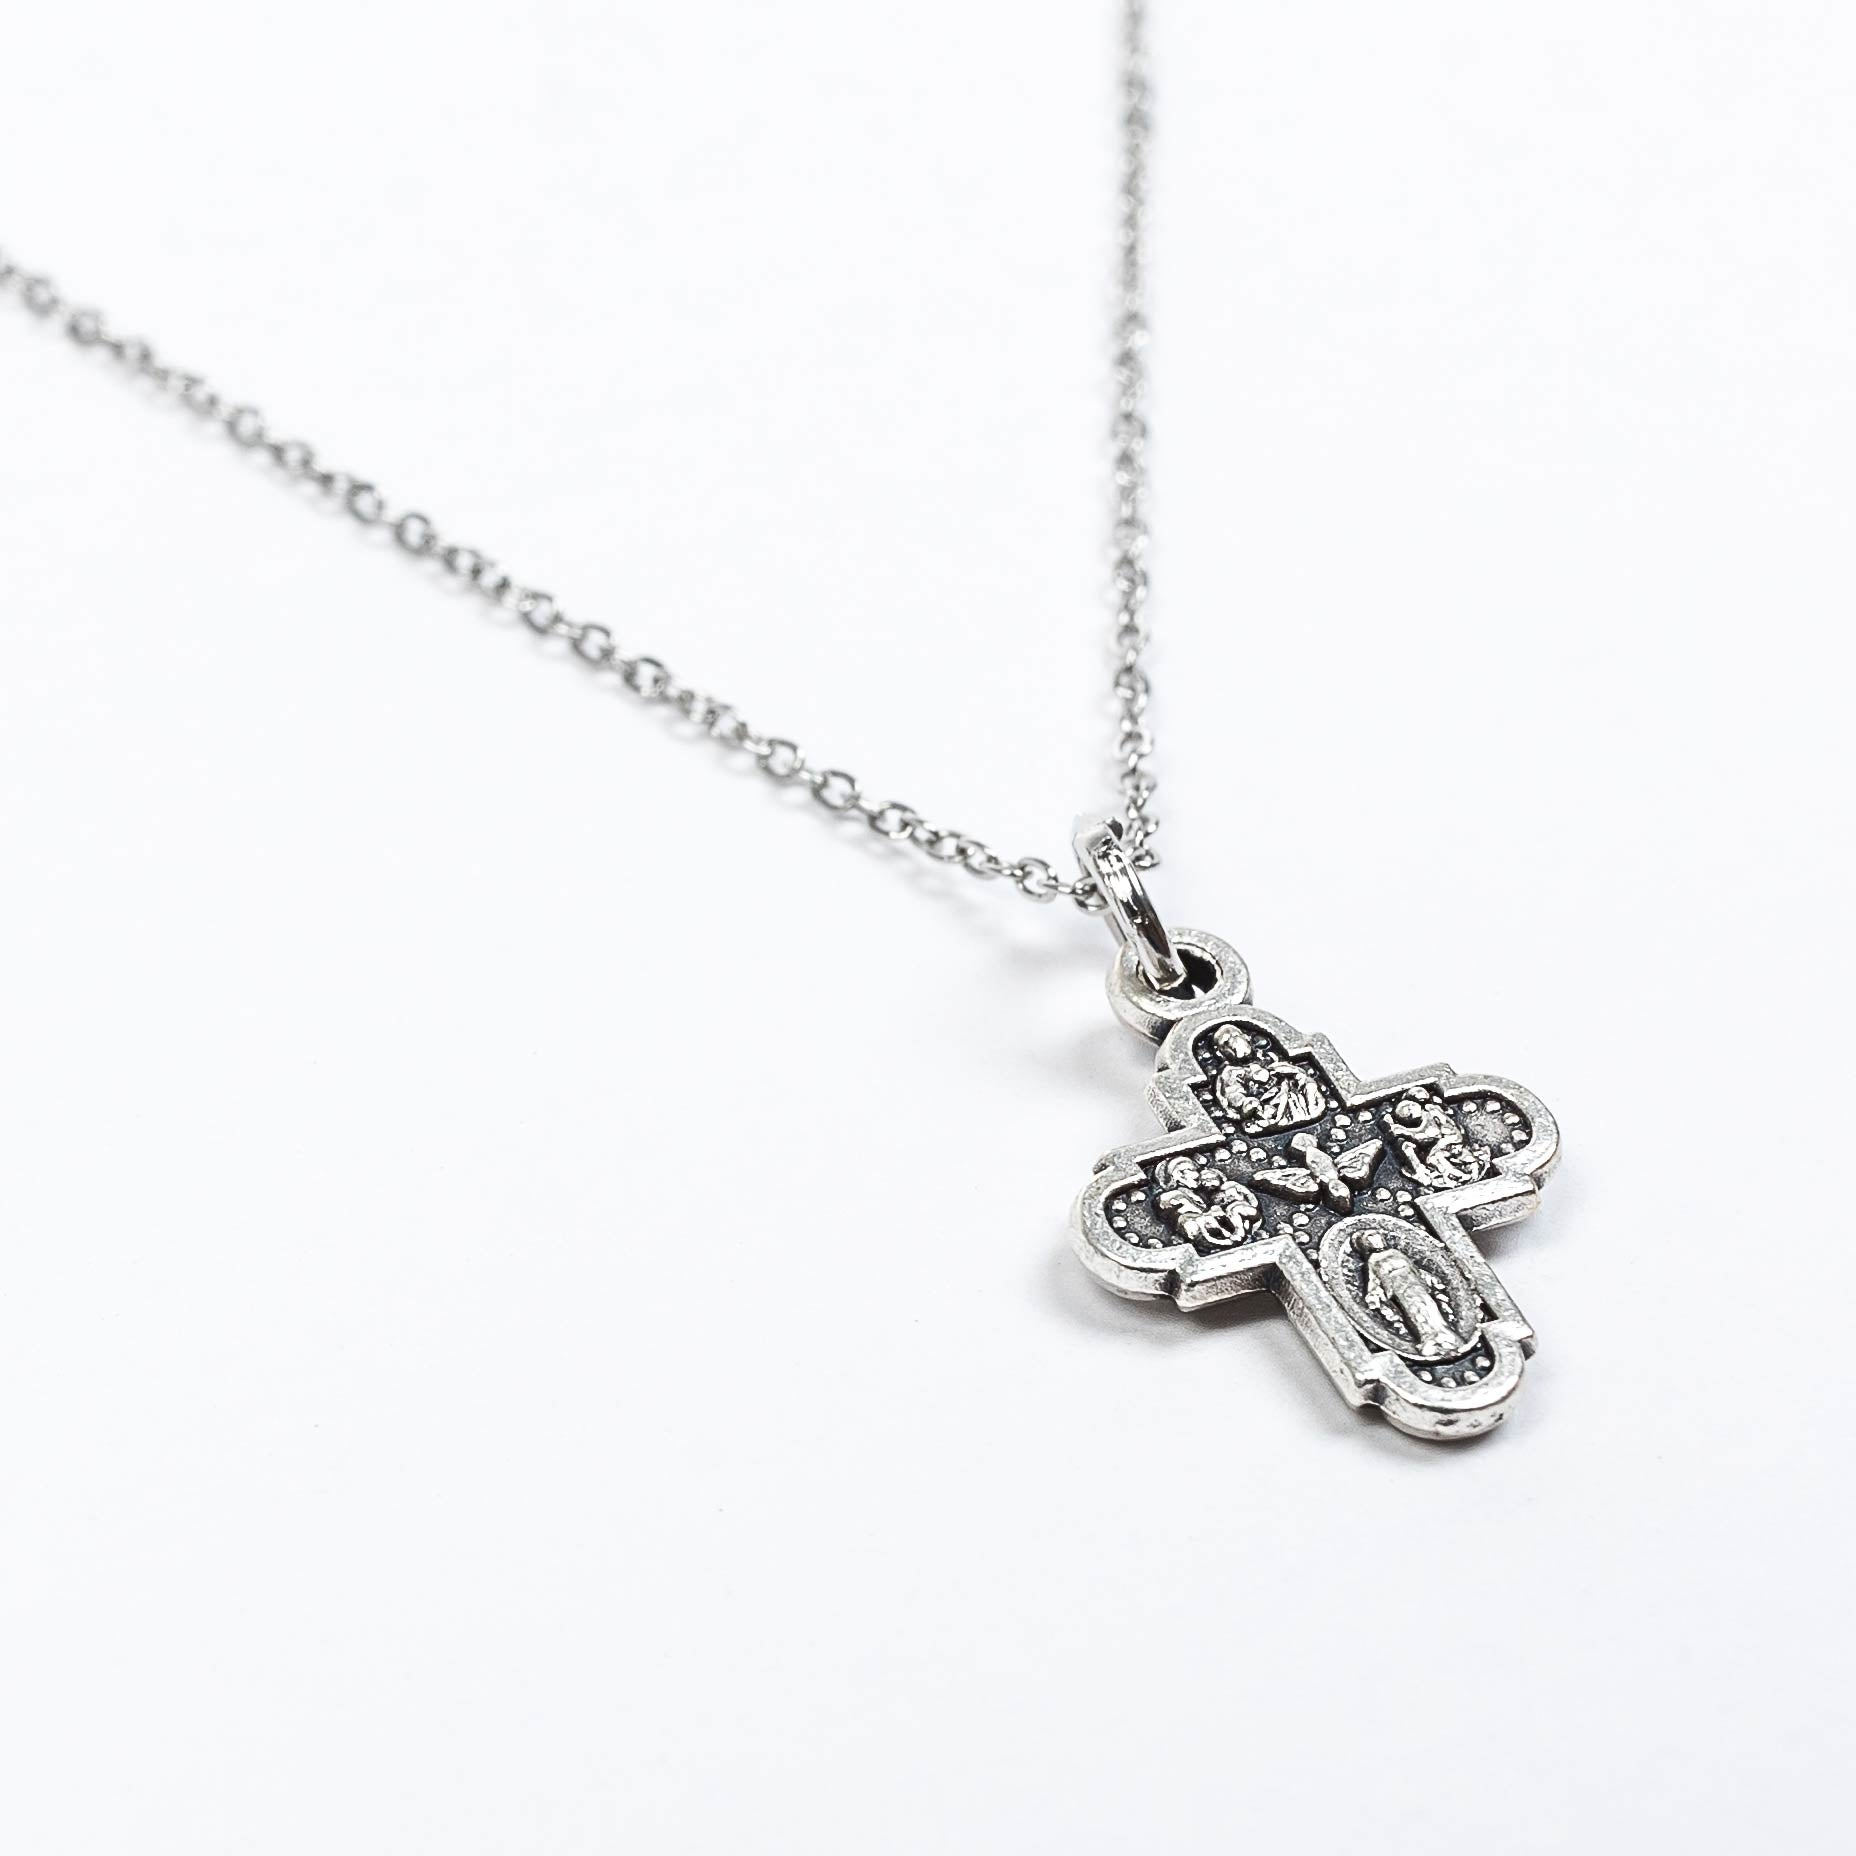 Heavenly Blessings Four Way Cross Necklace